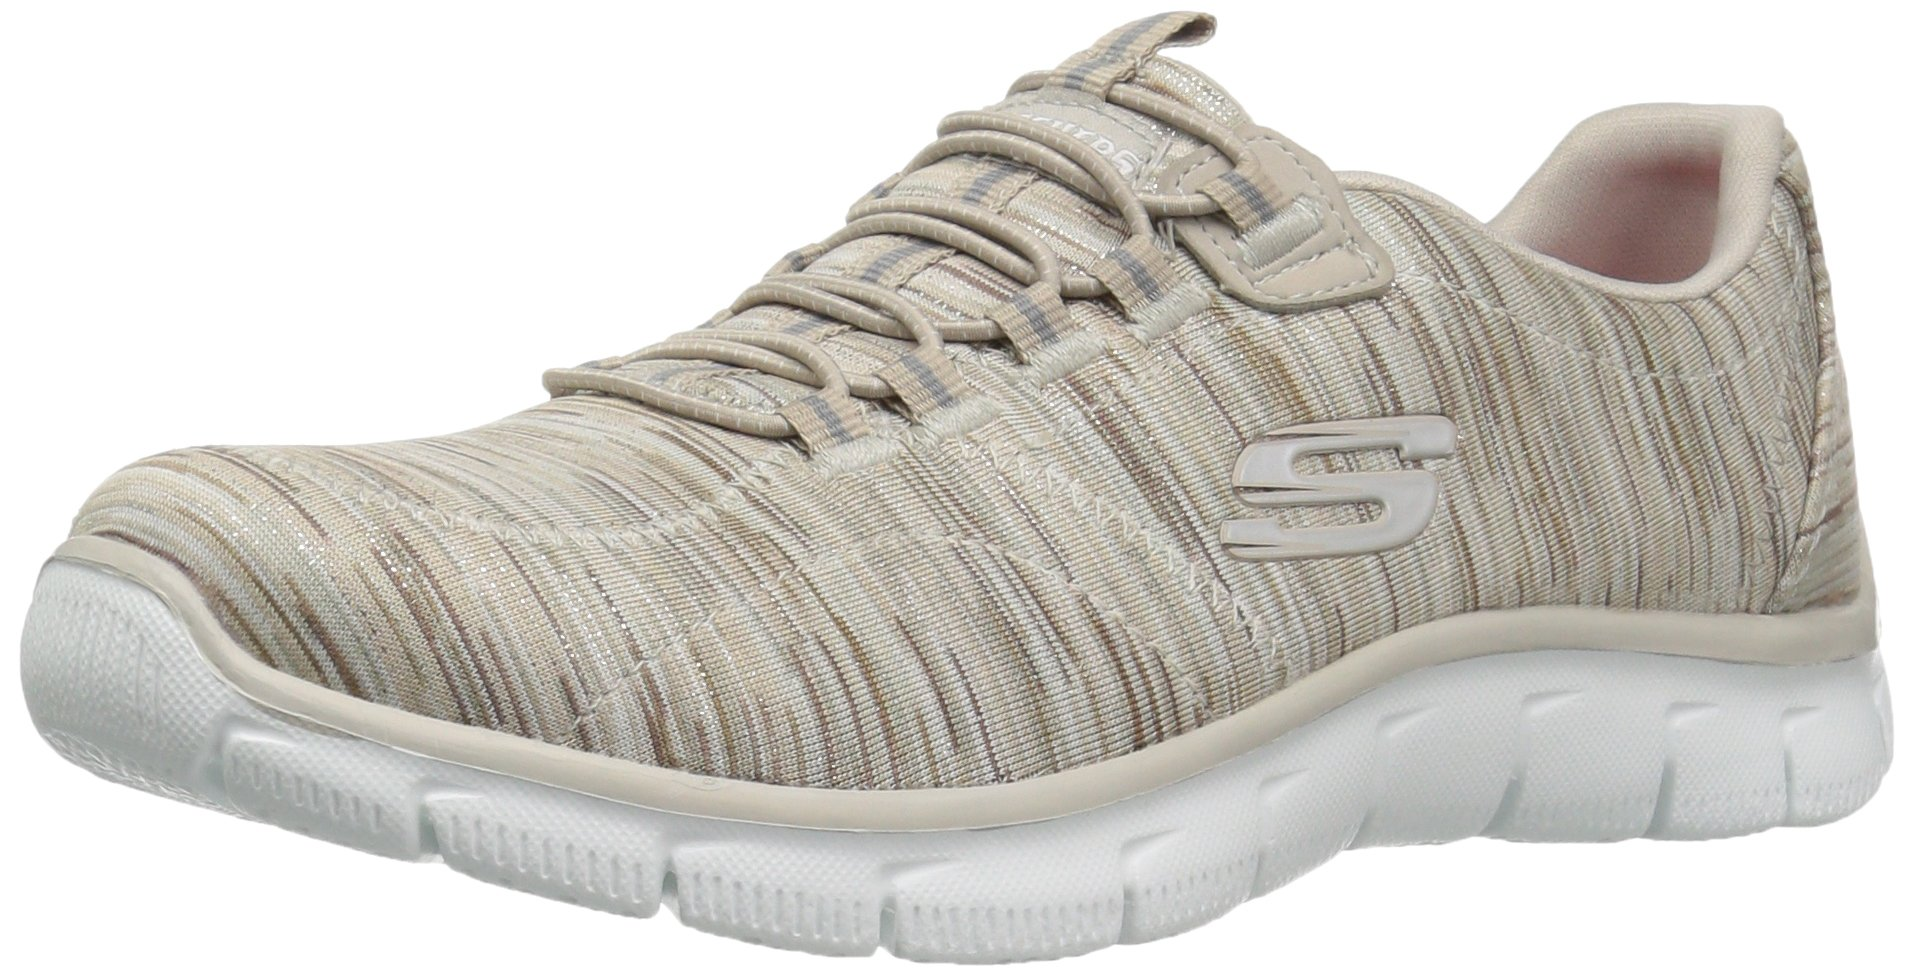 Skechers Women's Empire Game On Memory Foam Sneakers Shoes, Taupe, 6 B(M) US